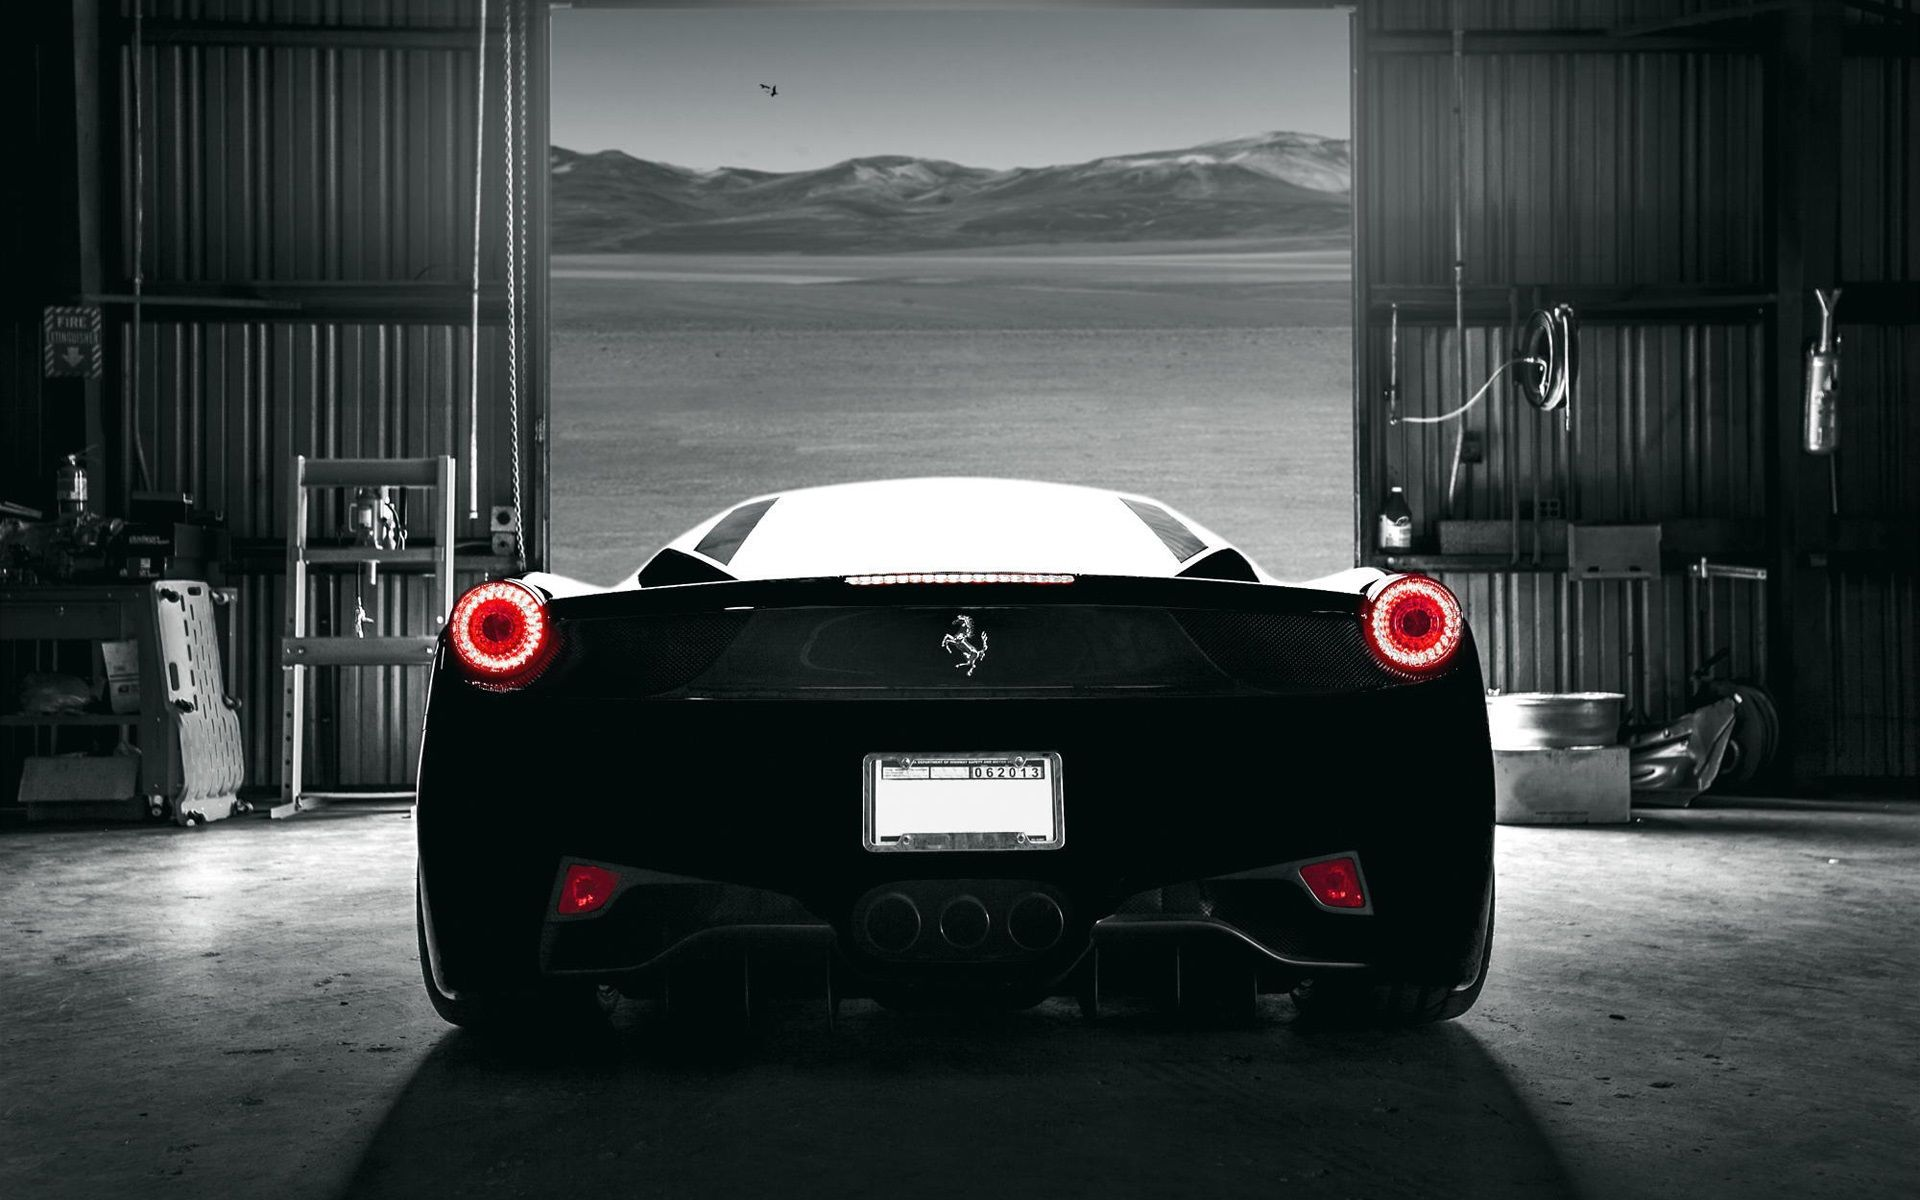 Black Ferrari Wallpaper Desktop Ymu Cars Pinterest Ferrari